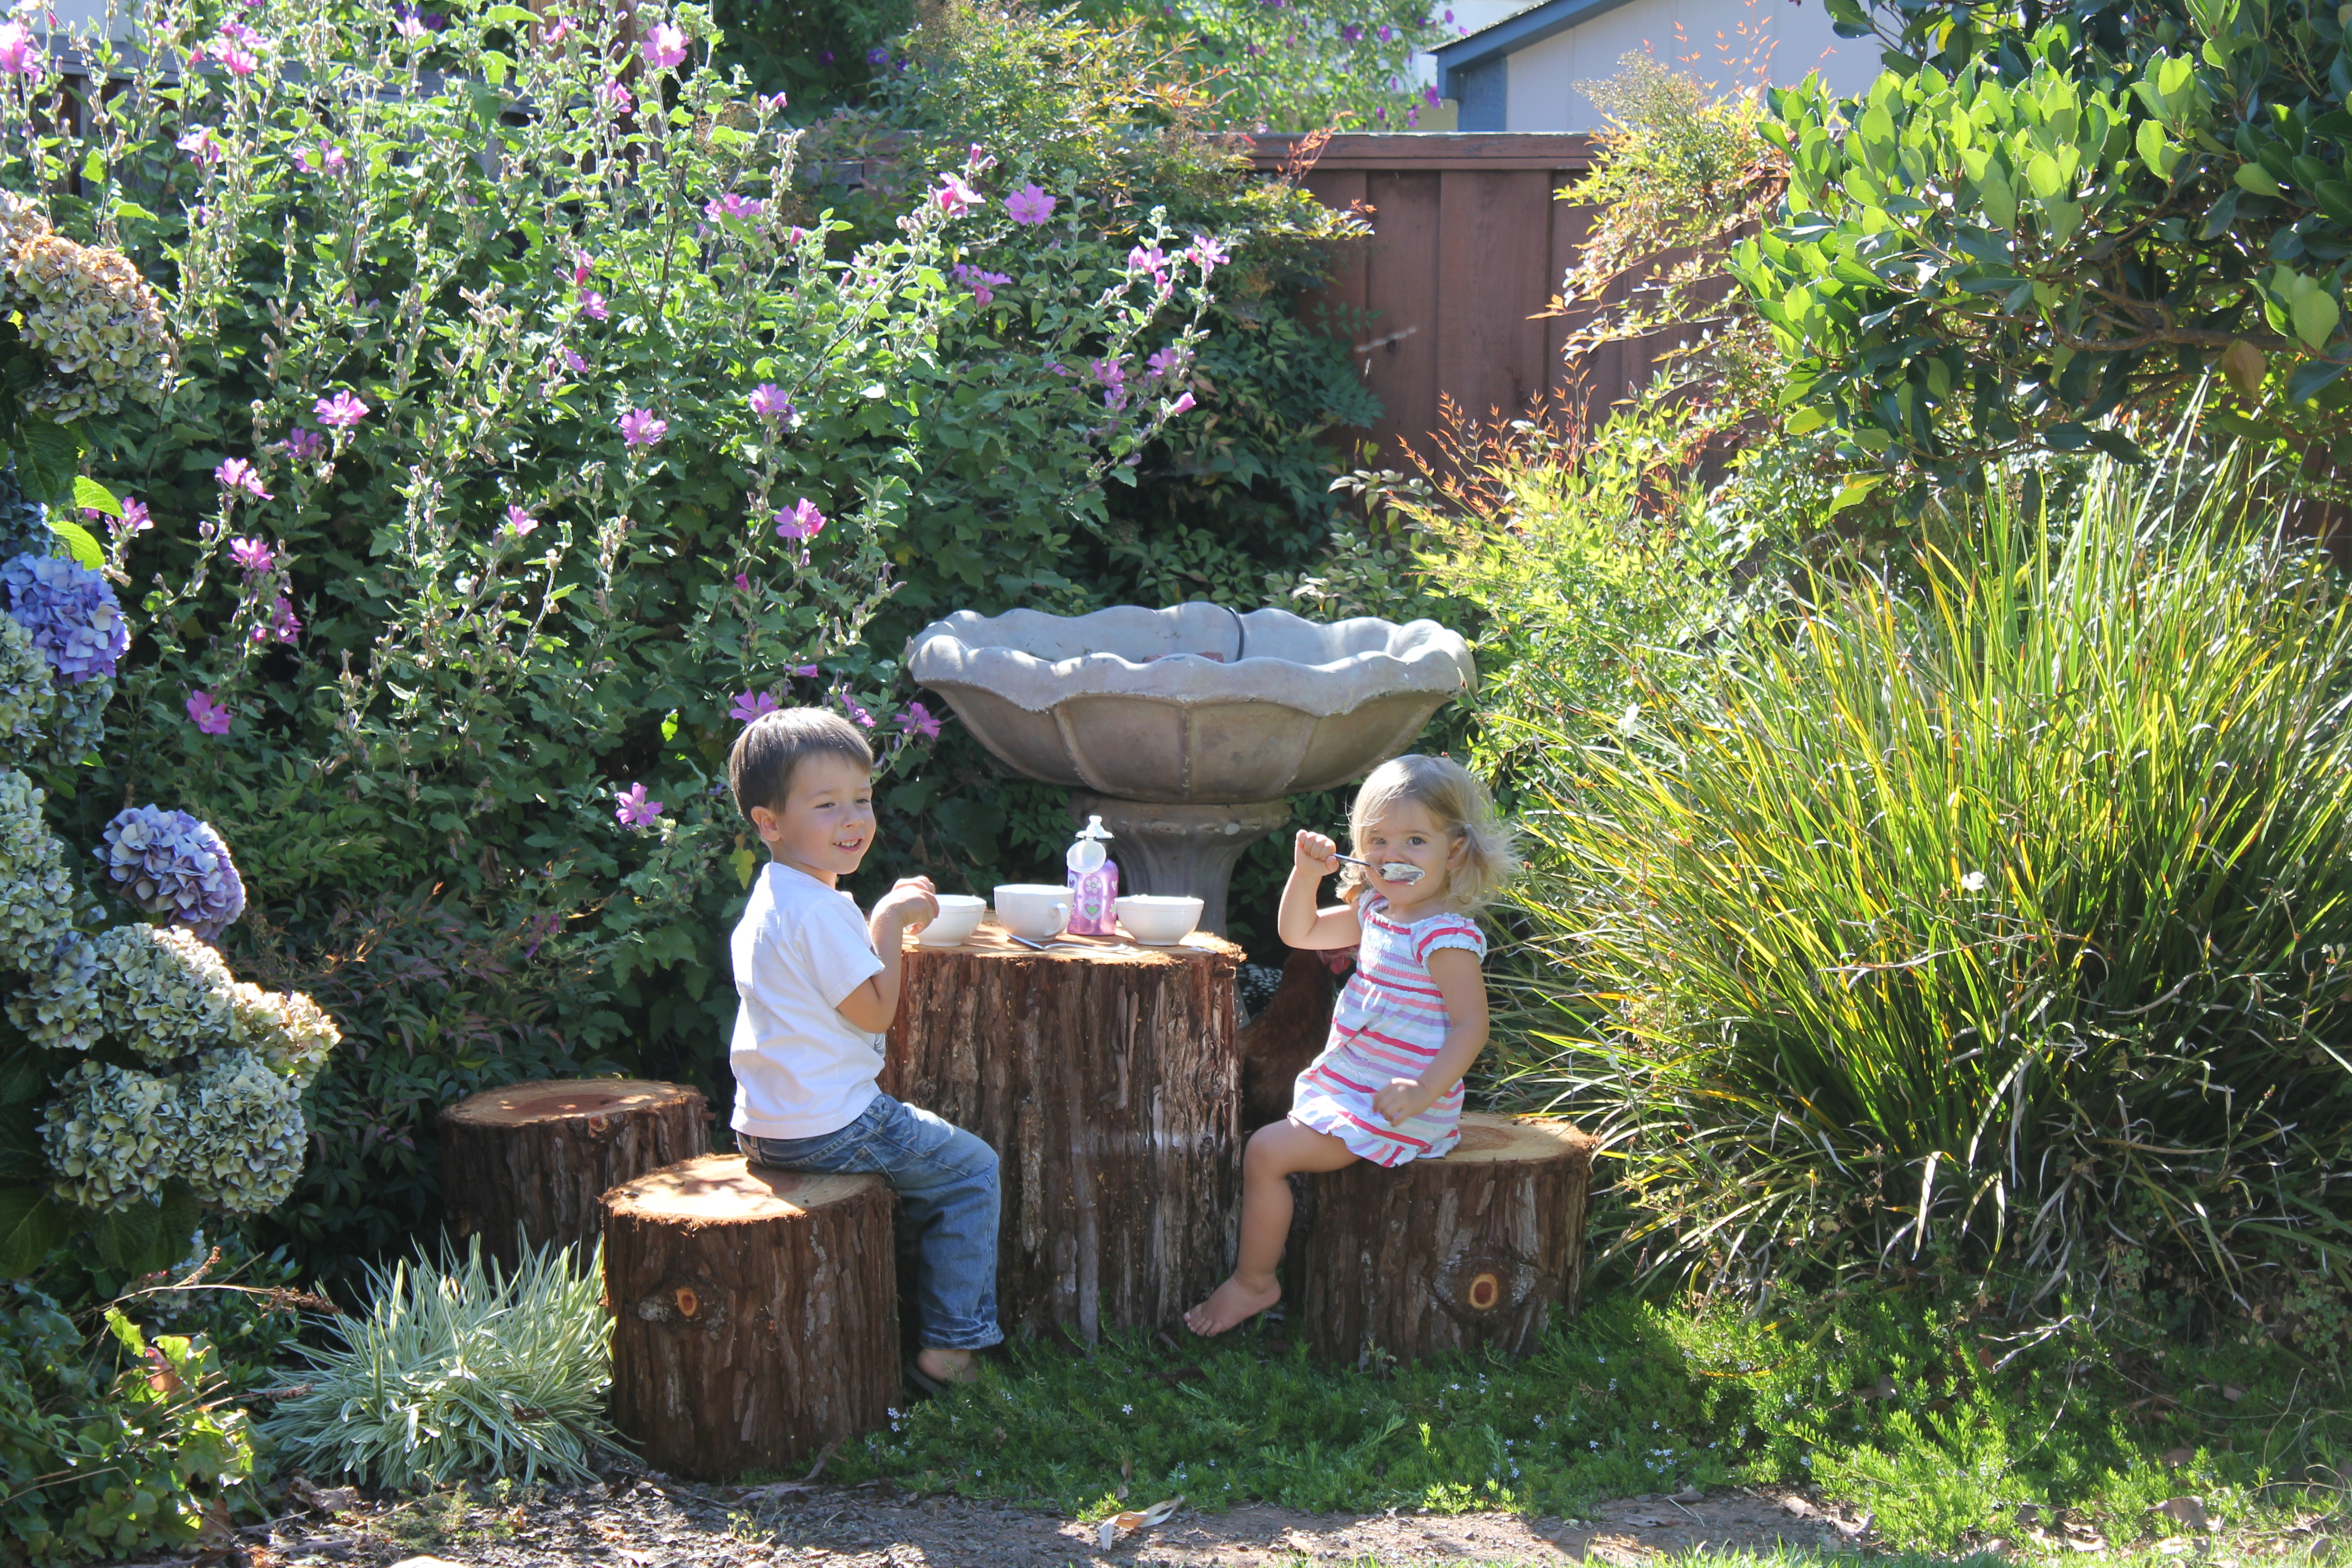 nature play natural children outdoor spaces backyard garden playground based space playgrounds camping kid playing living outdoors things diablo habitats